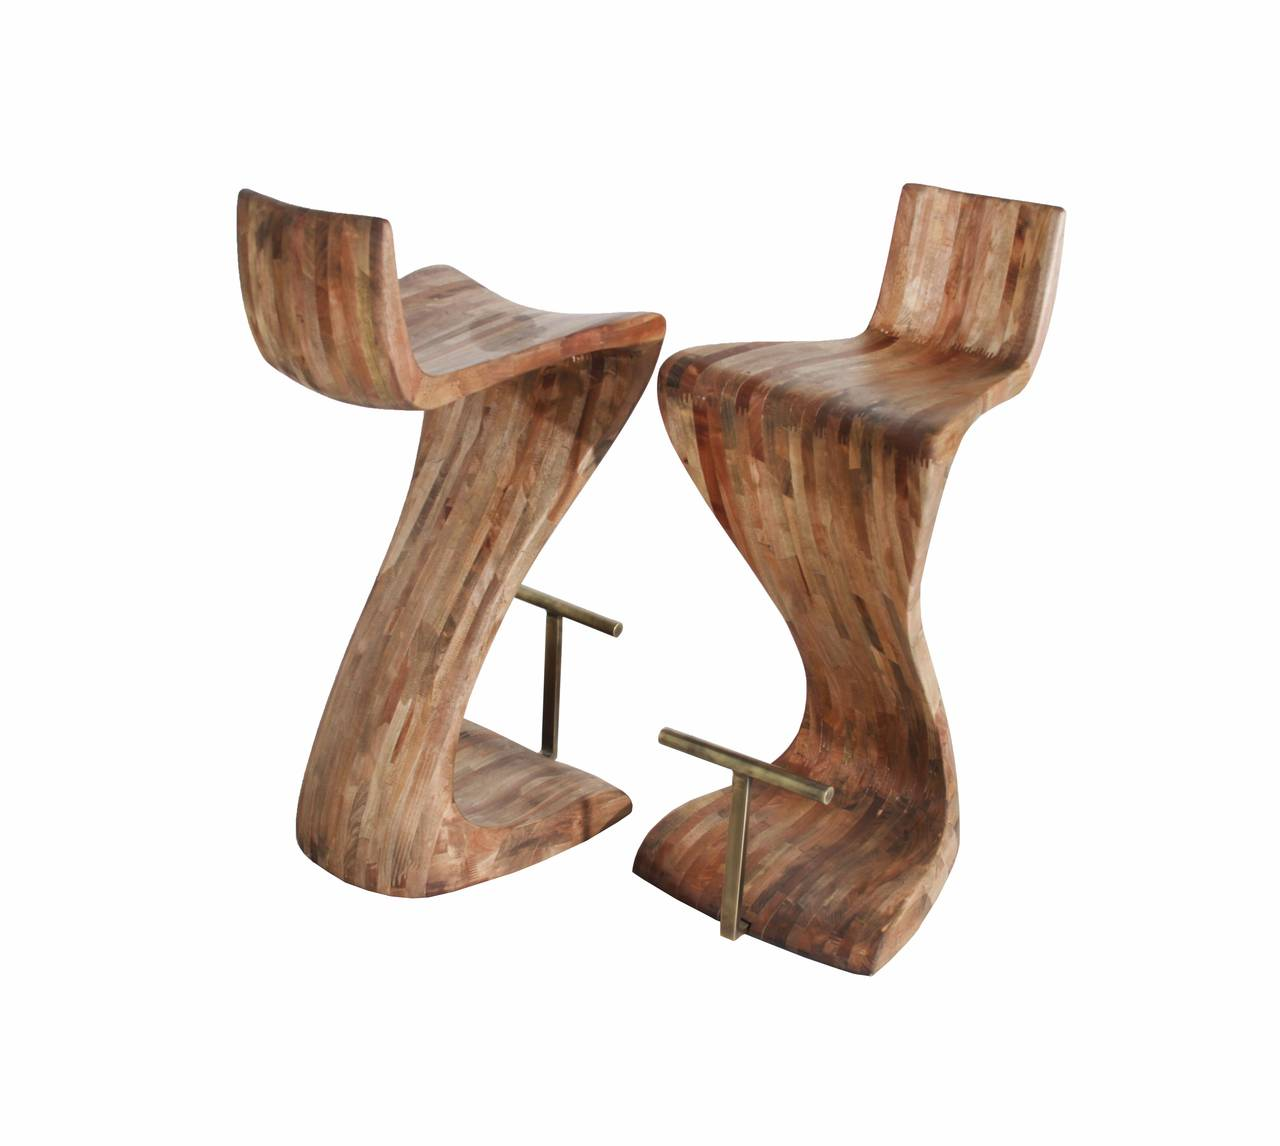 Pair Of Sculptural Wood Bar Stools With Solid Brass Foot